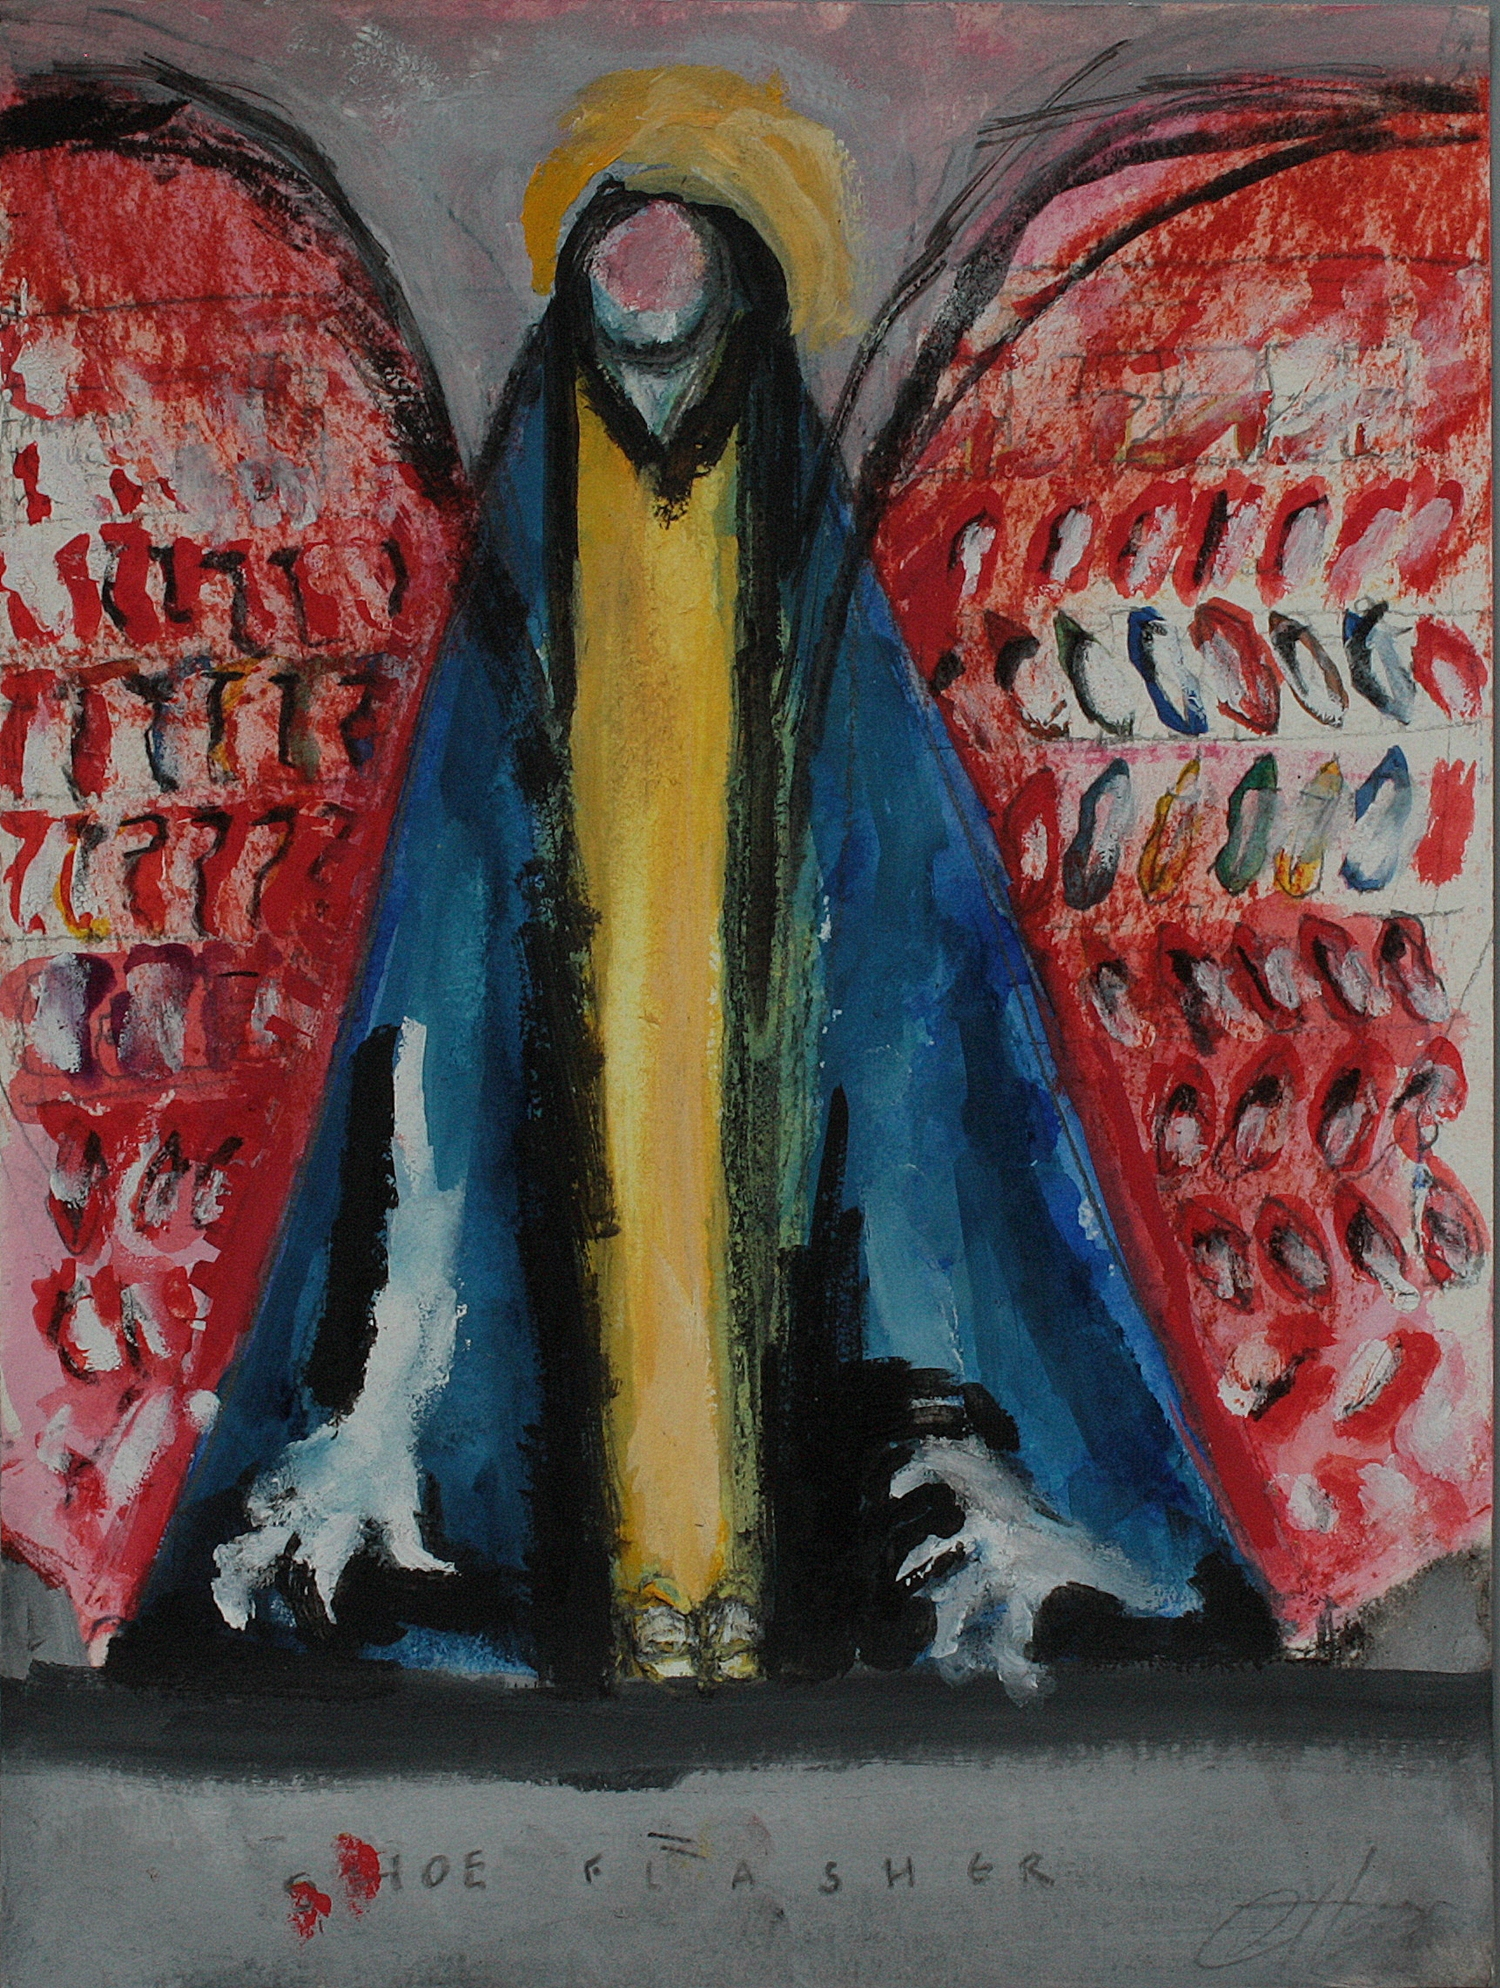 SHOE FLASHER  mixed media on paper, 23x31cm